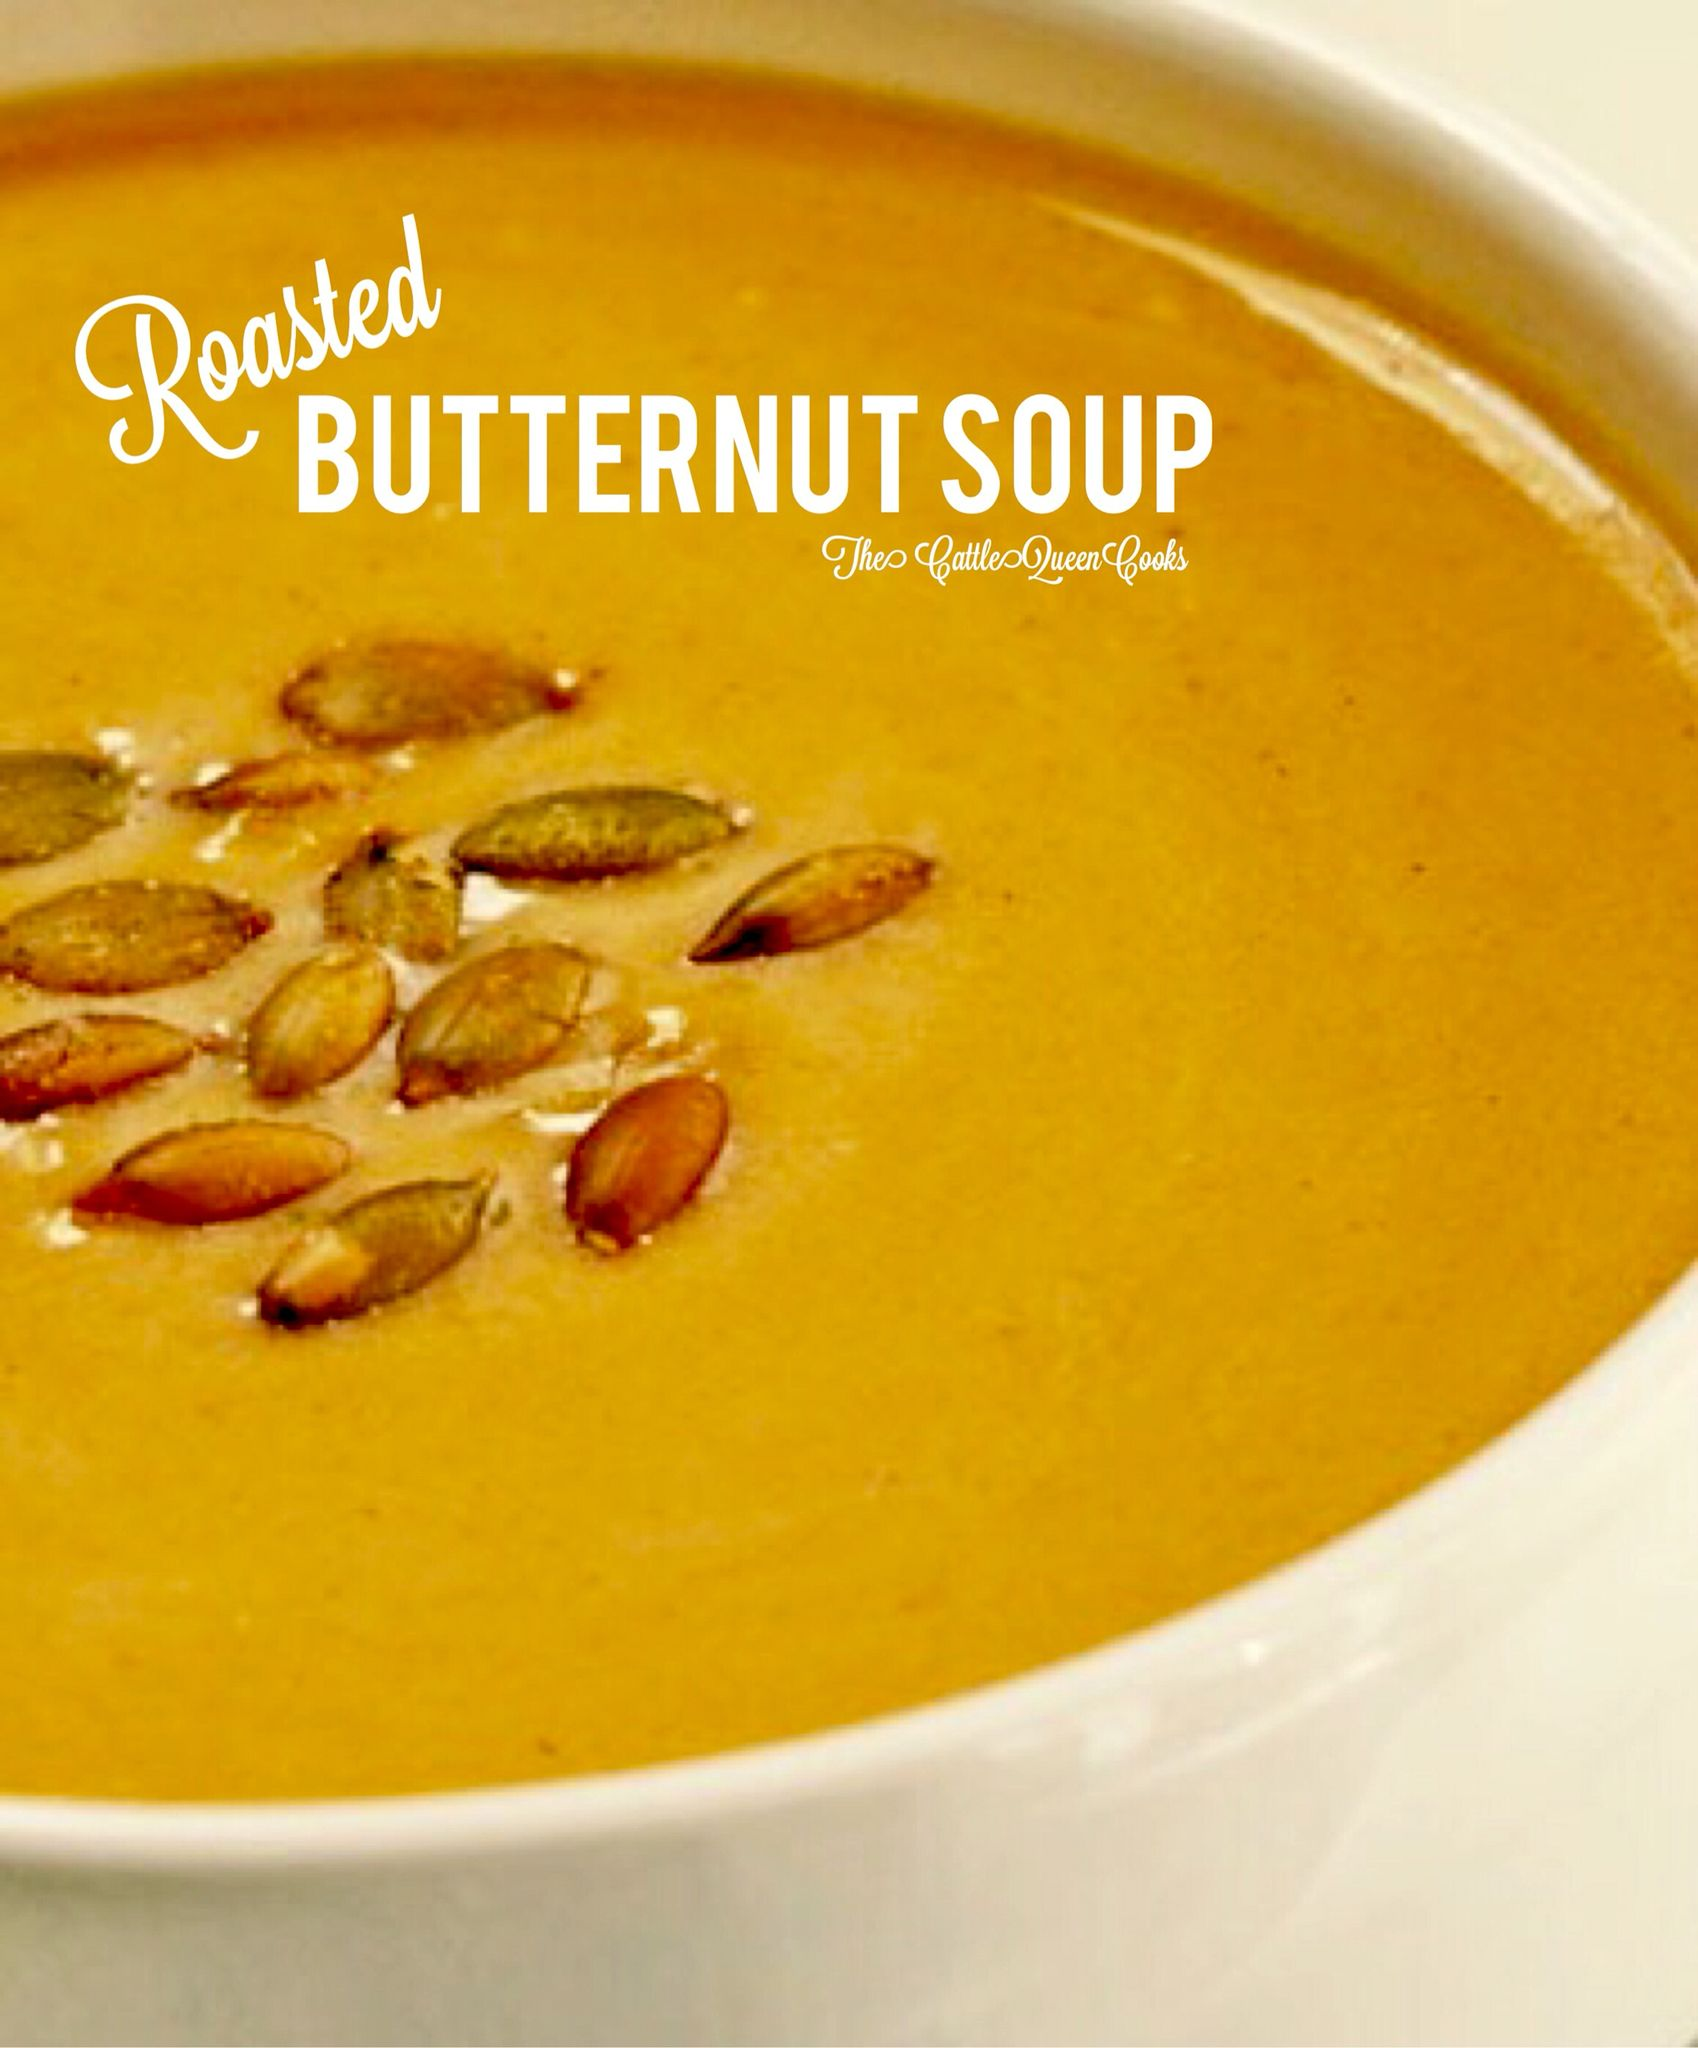 Savory Roasted Butternut Soup...the recipe is amazing....Roasted Butternut Squash Soup   Author:The Cattle Queen Cooks recipe posted on PineCreekStyle & The CattleQueen Cooks Facebook pages!